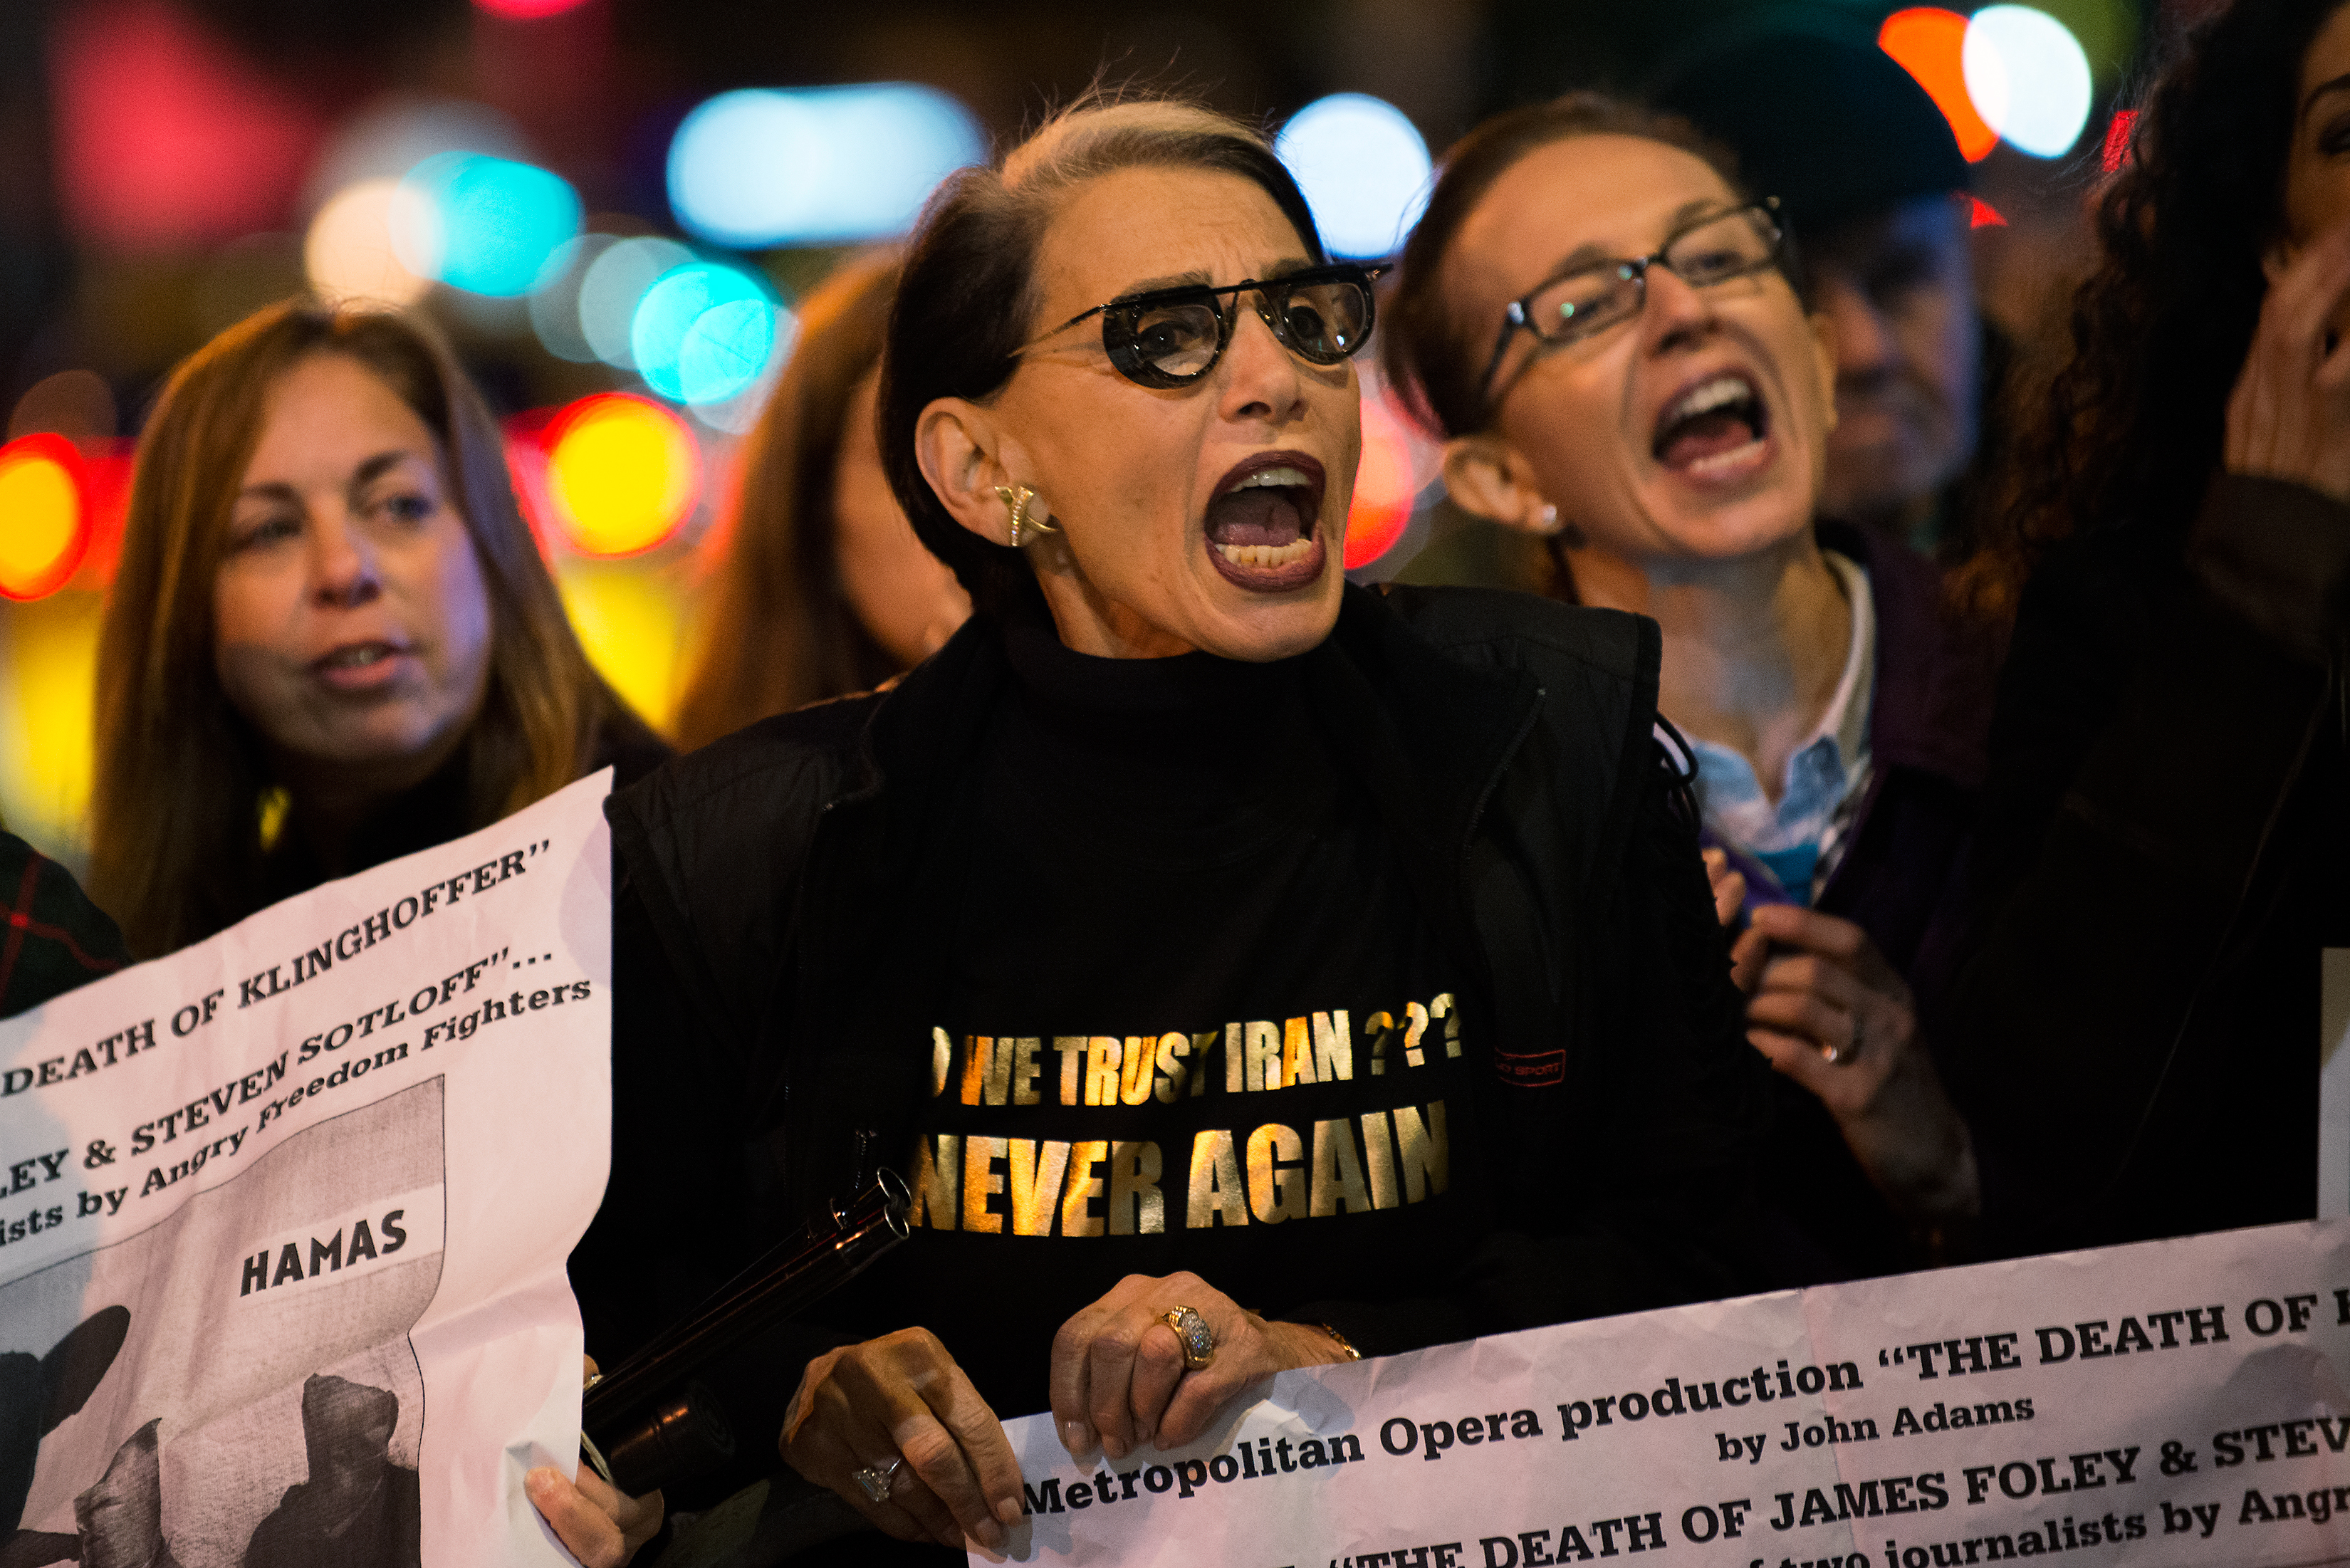 Protestors yell at counter-protestors and opera attendees at the Metropolitan Opera at Lincoln Center on opening night of the opera,  The Death of Klinghoffer  on October 20, 2014 in New York, NY.